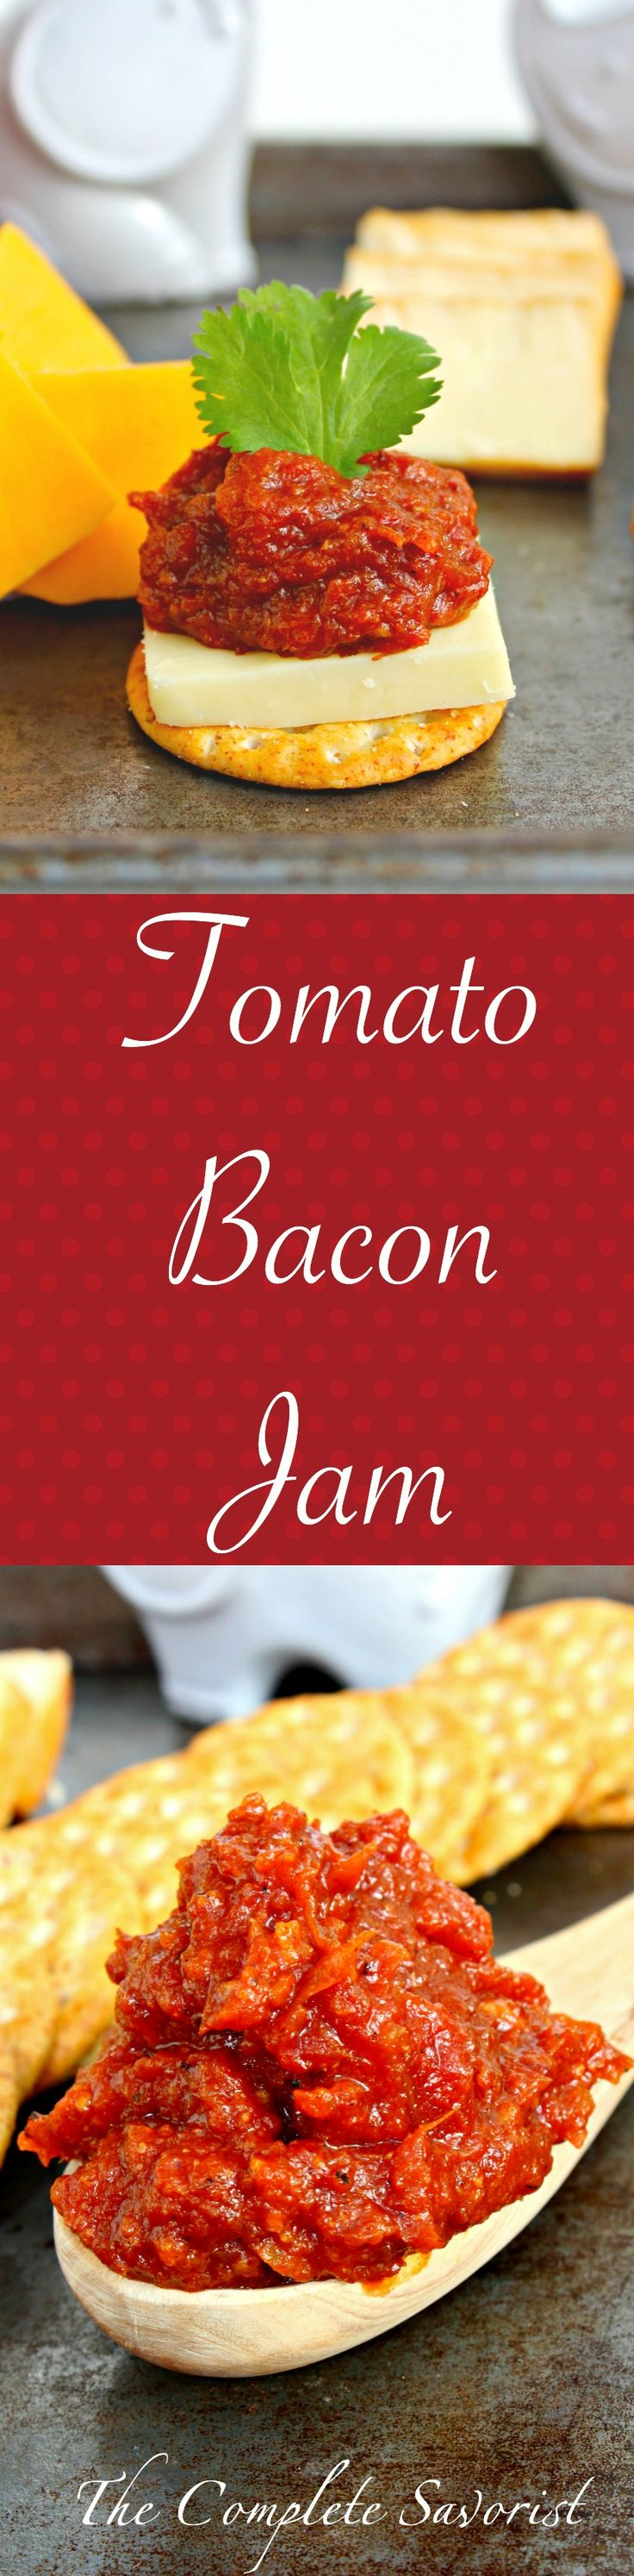 Tomato Bacon Jam ~ Tangy, sweet, and oh so bacon-y, a jam unlike any jam you've ever had. Great with cheese, crackers, or basically eating right out of the jar ~ The Complete Savorist